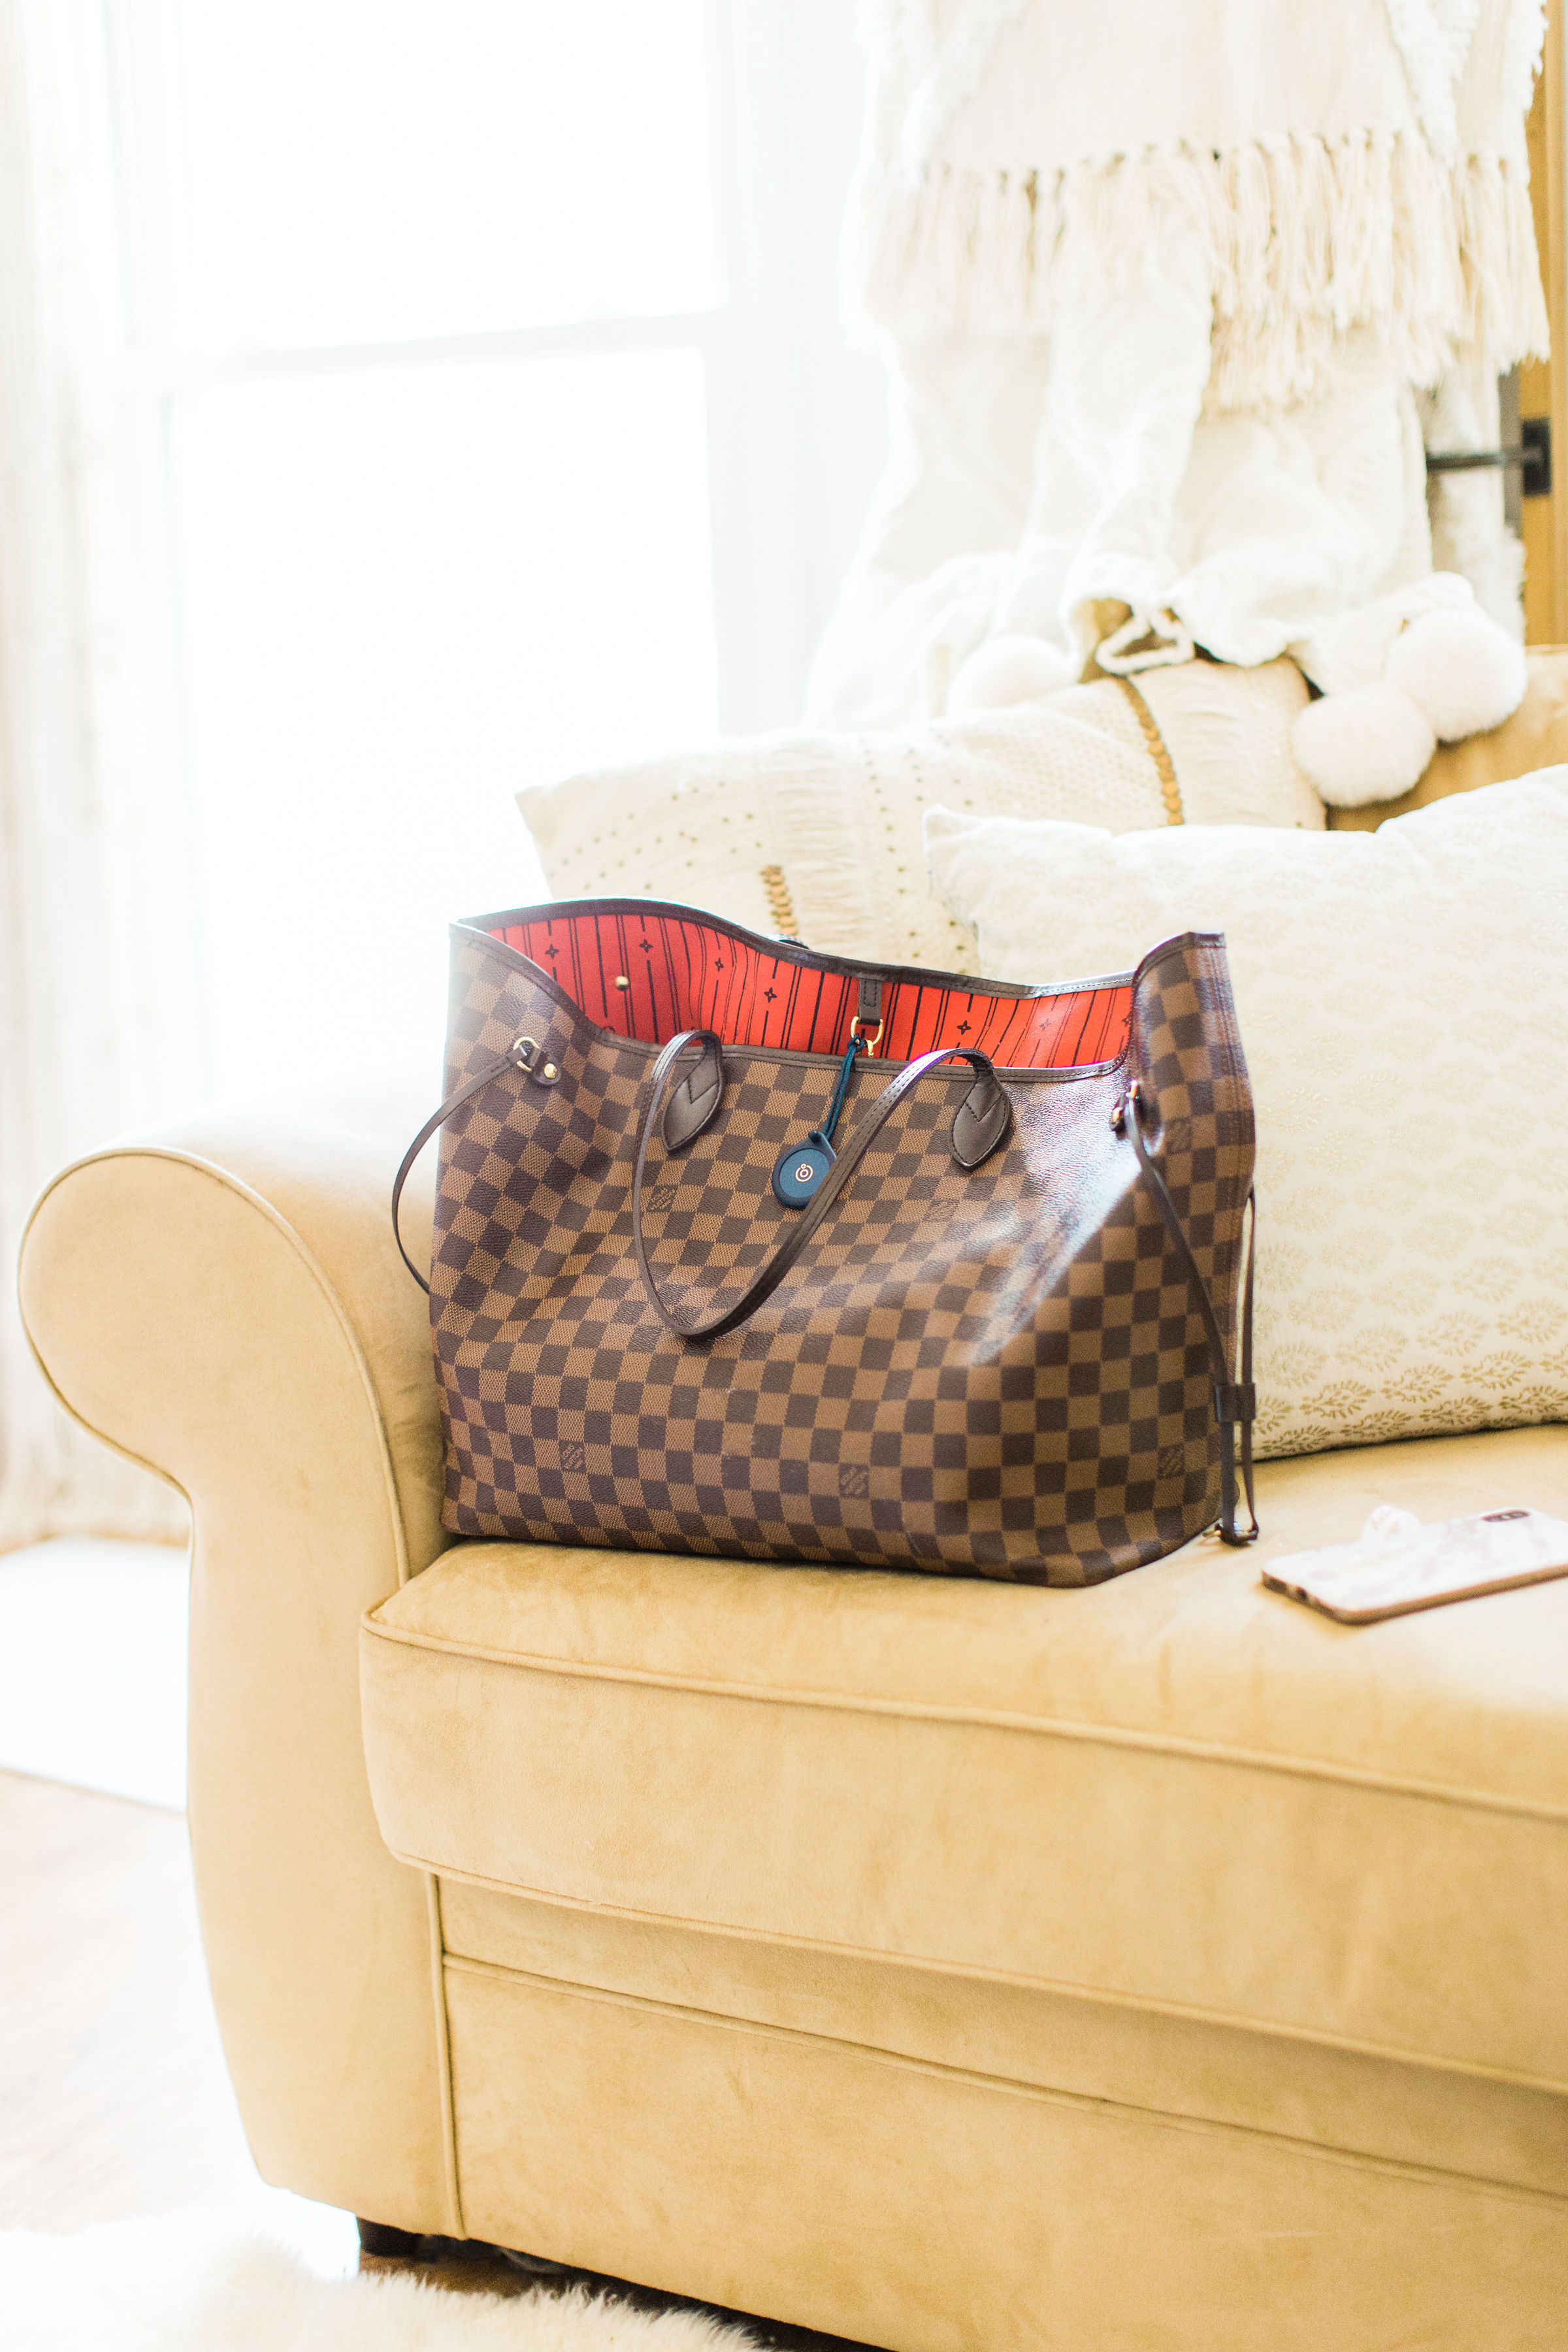 tips for avoiding the morning chaos, including actionable ways to stay on time, keep organized, and find a little bit of morning calm, including my new favorite mom hack - Adero - that now has a permanent spot in my diaper bag. | glitterinc.com | @glitterinc